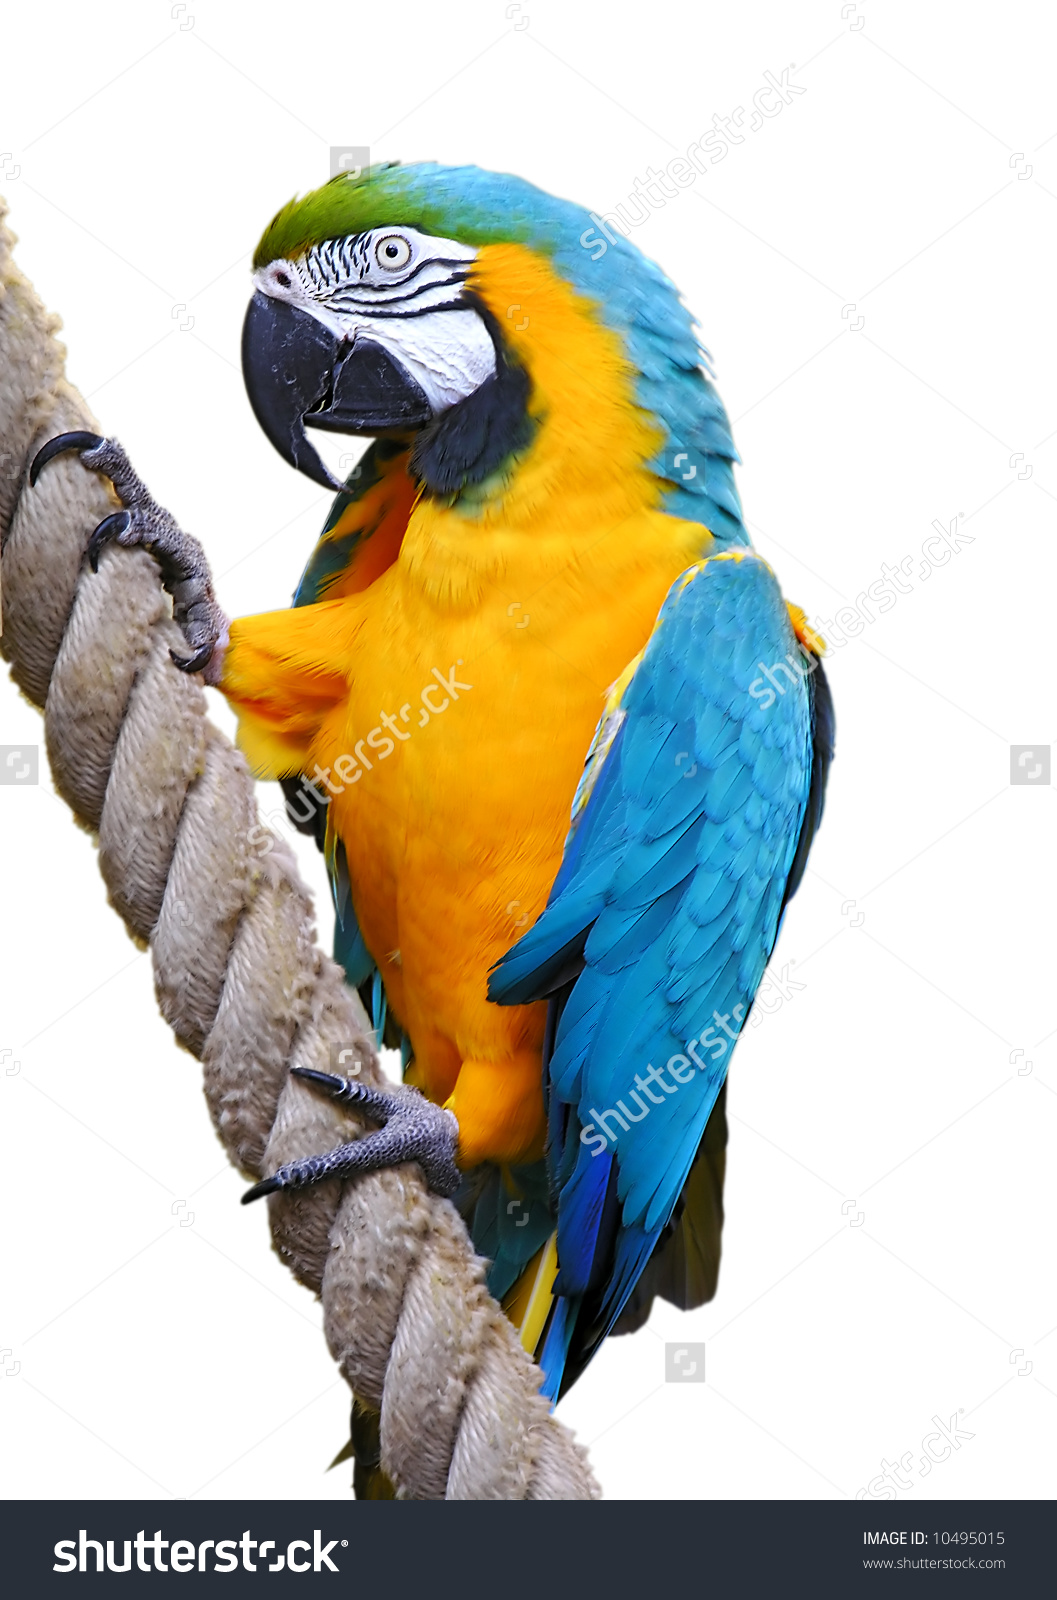 Blue-and-yellow Macaw clipart #3, Download drawings